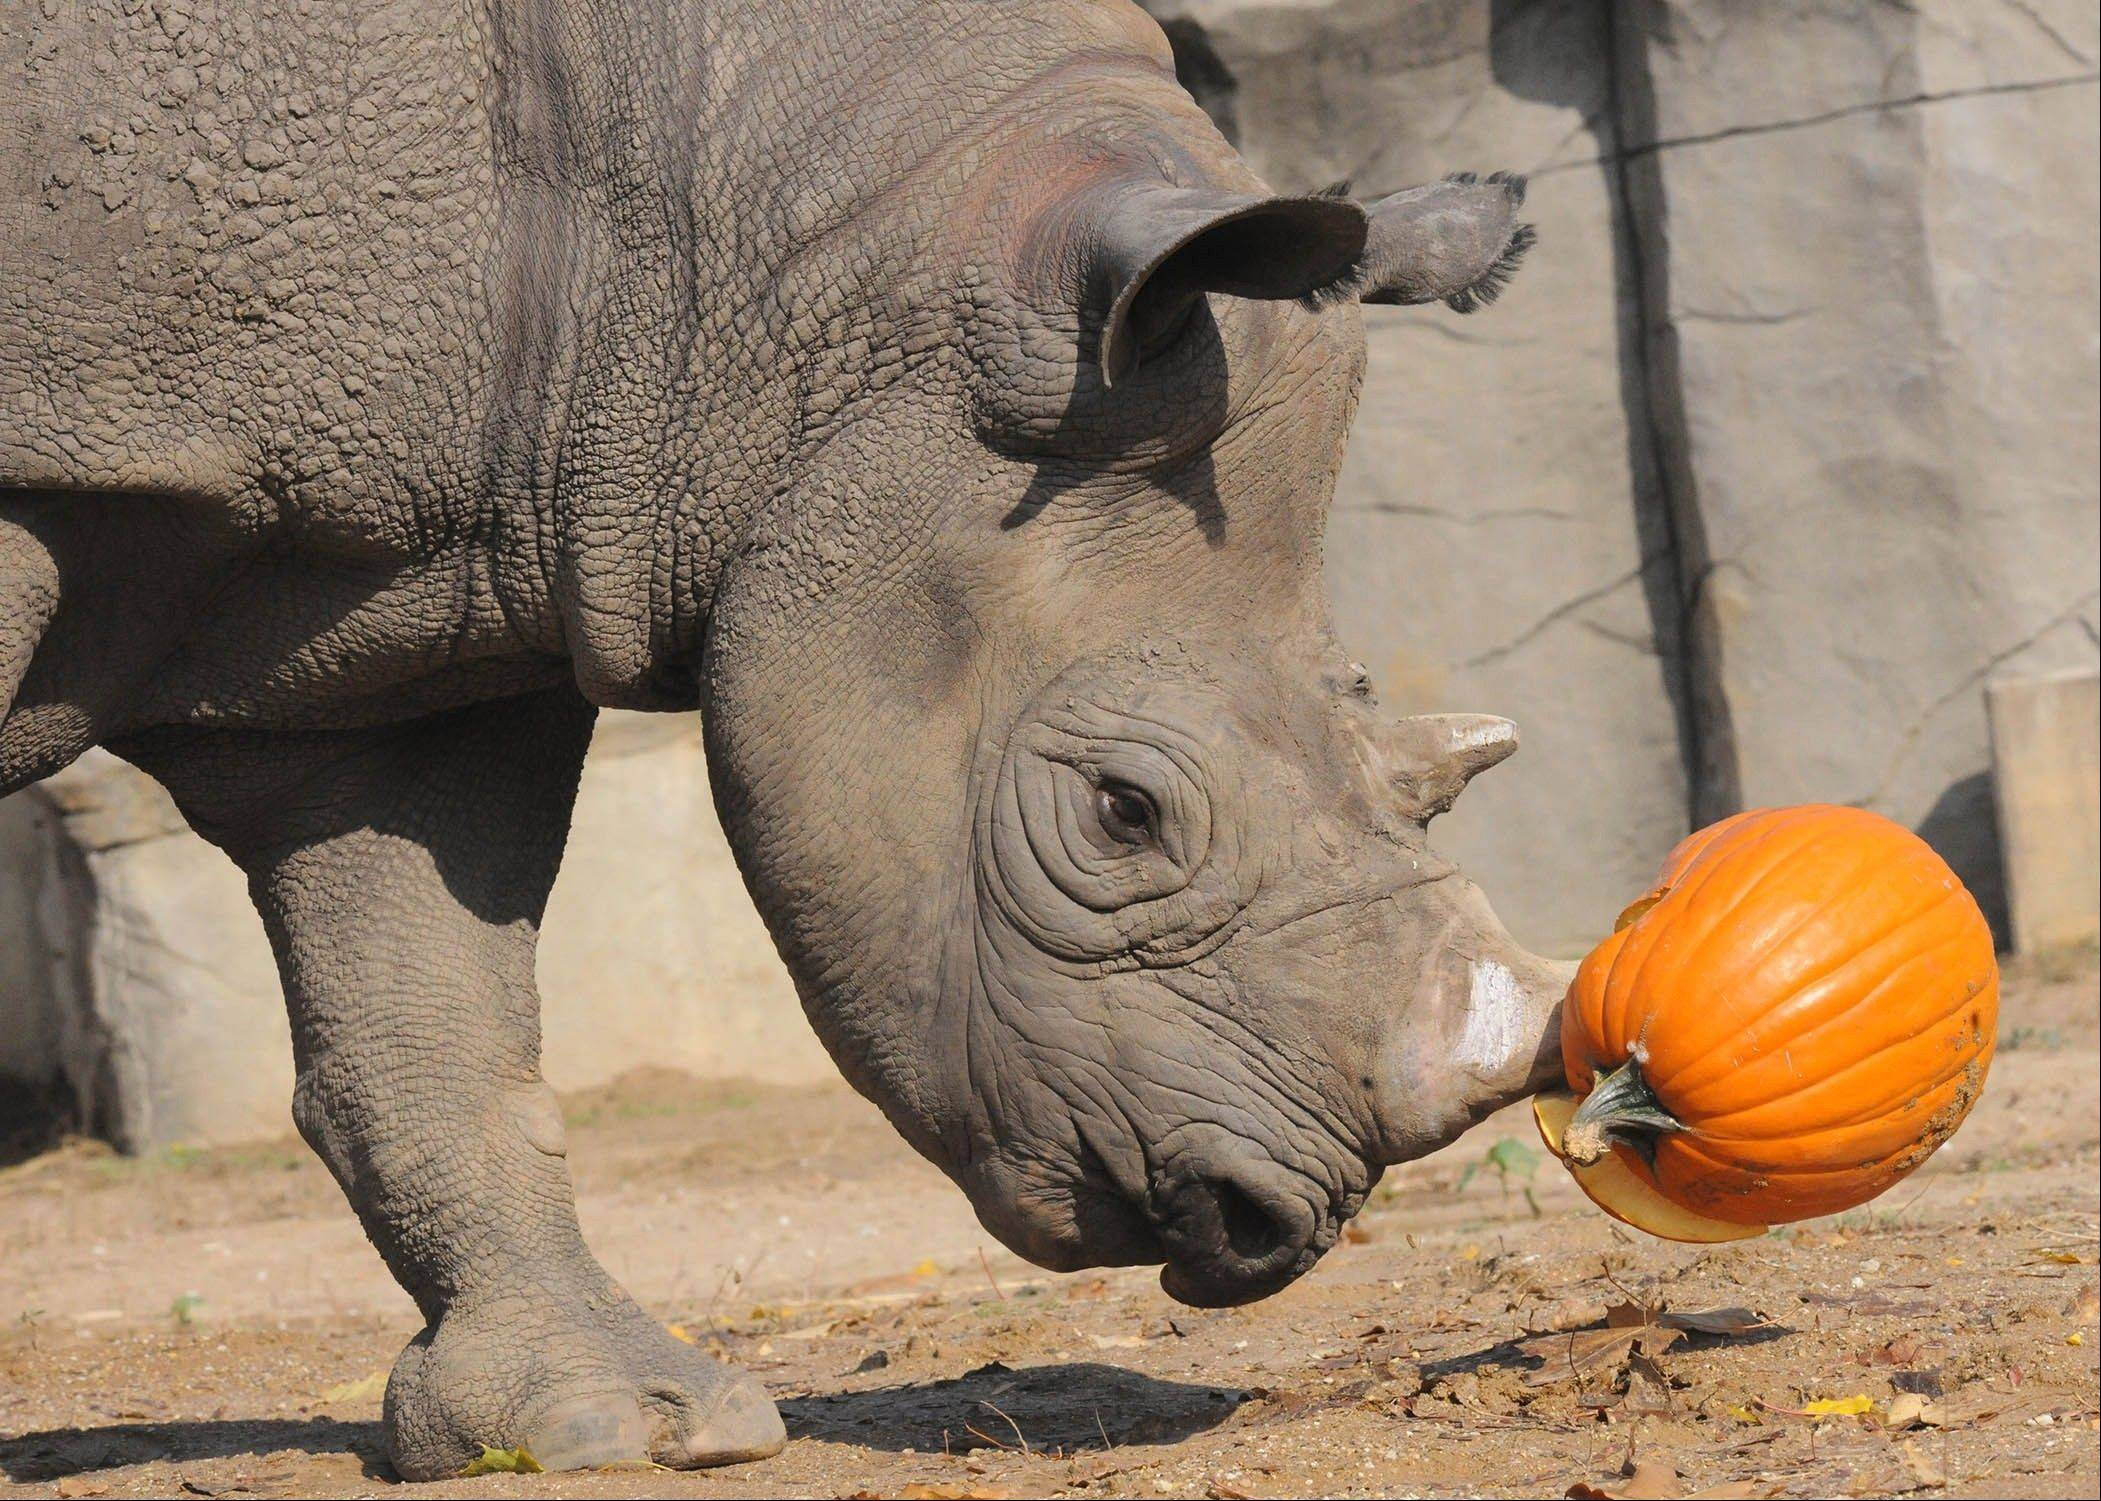 A rhino enjoys a Halloween treat during the Brookfield Zoo's annual Boo! at the Zoo Oct. 19-20 and Oct. 26-27.